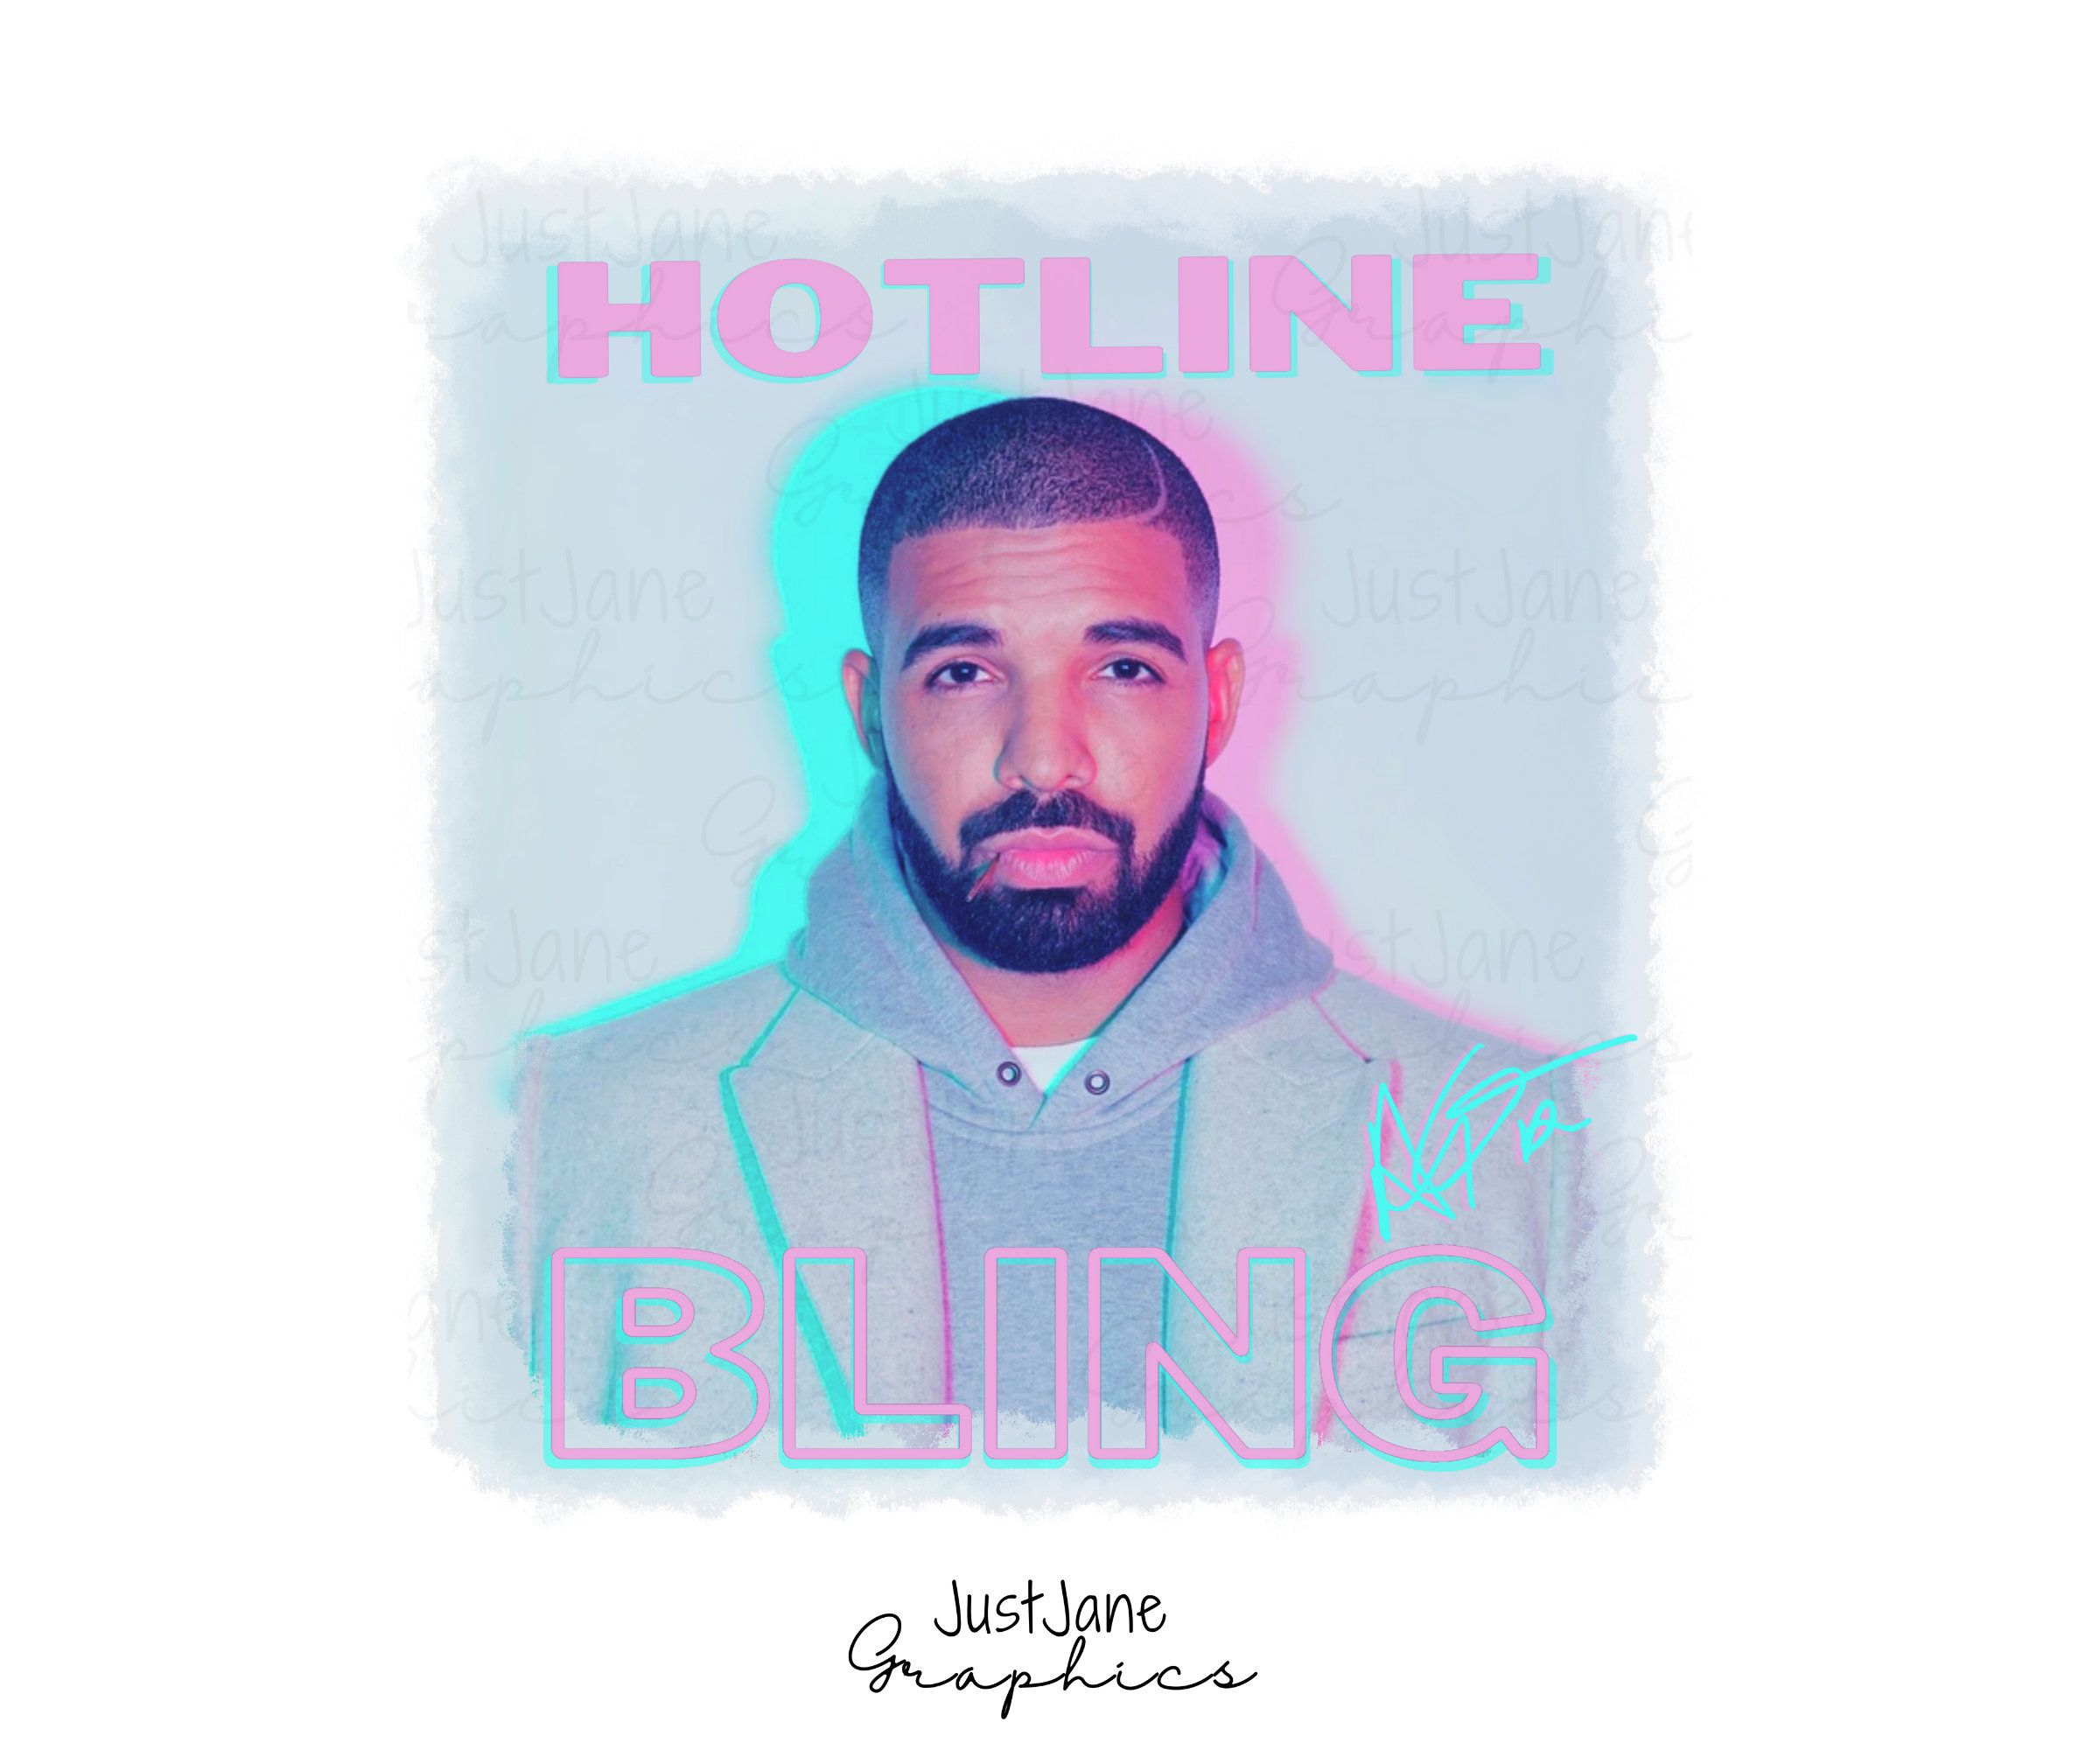 Drake Hotline Bling Neon Print Sublimation Transfer Png File Etsy In 2021 Neon Printing How To Make Tshirts Personalized Gift Baskets